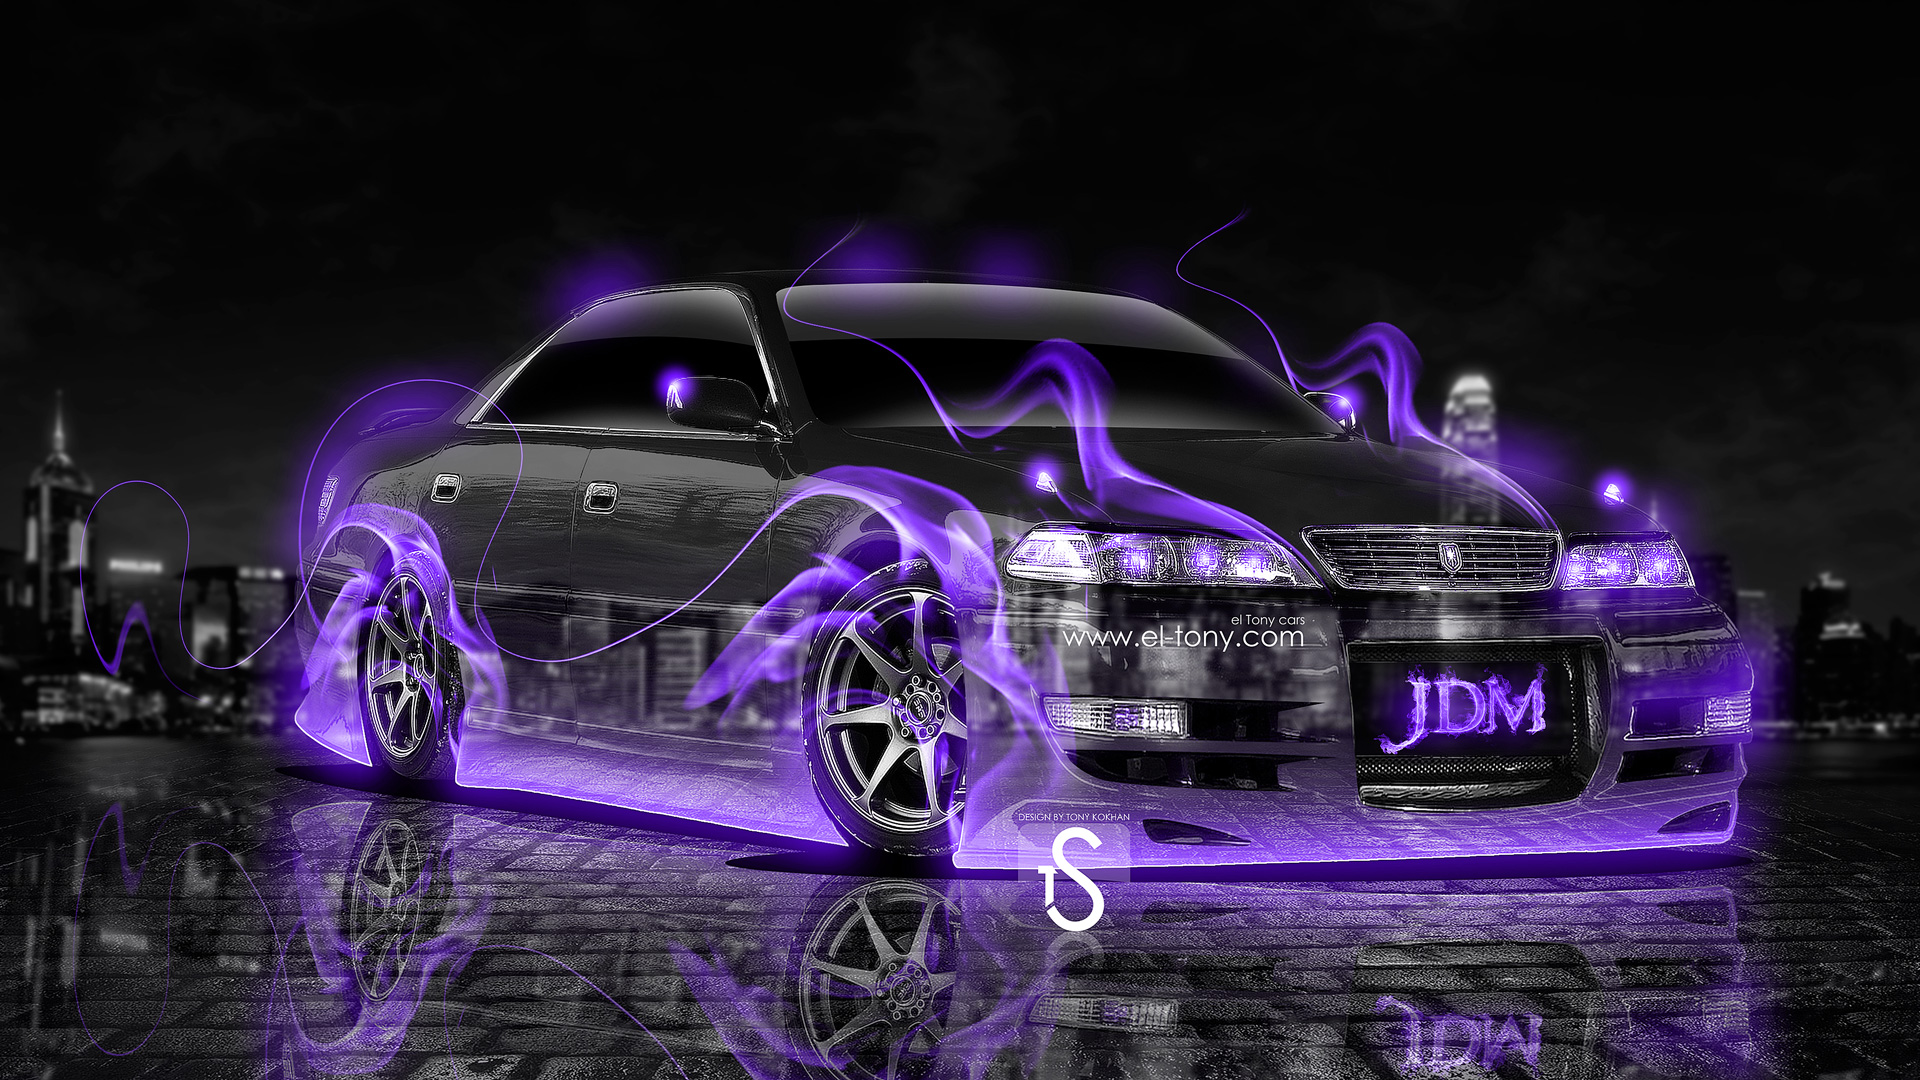 Beau Toyota Mark2 JZX100 JDM Violet Fire Crystal Car